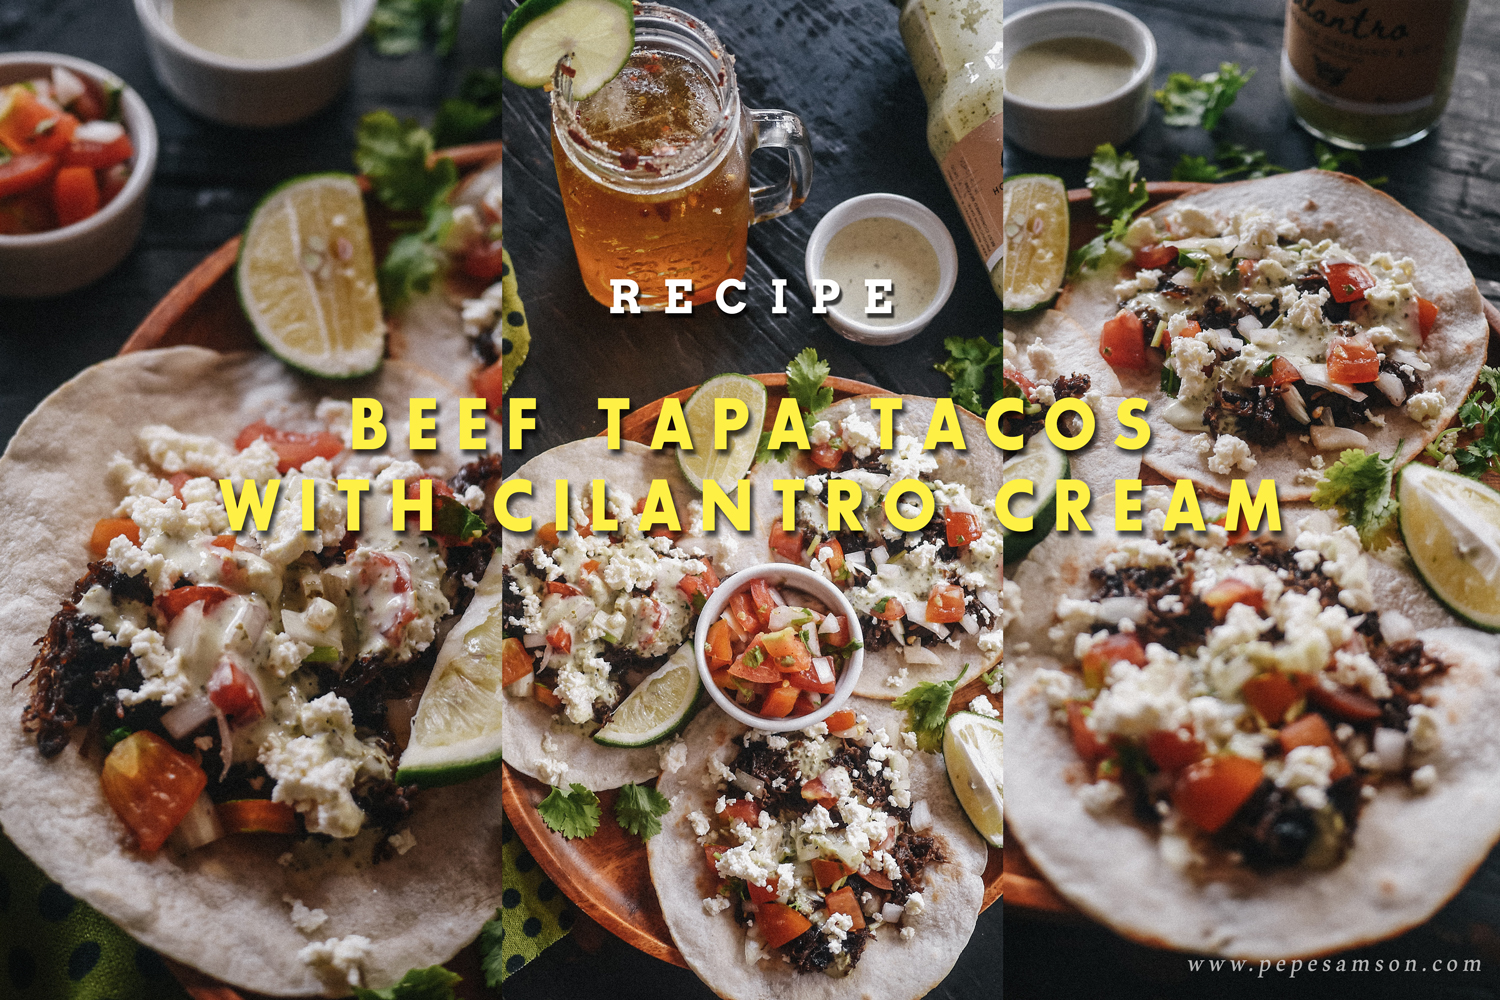 Recipe: Beef Tapa Tacos with Cilantro Cream